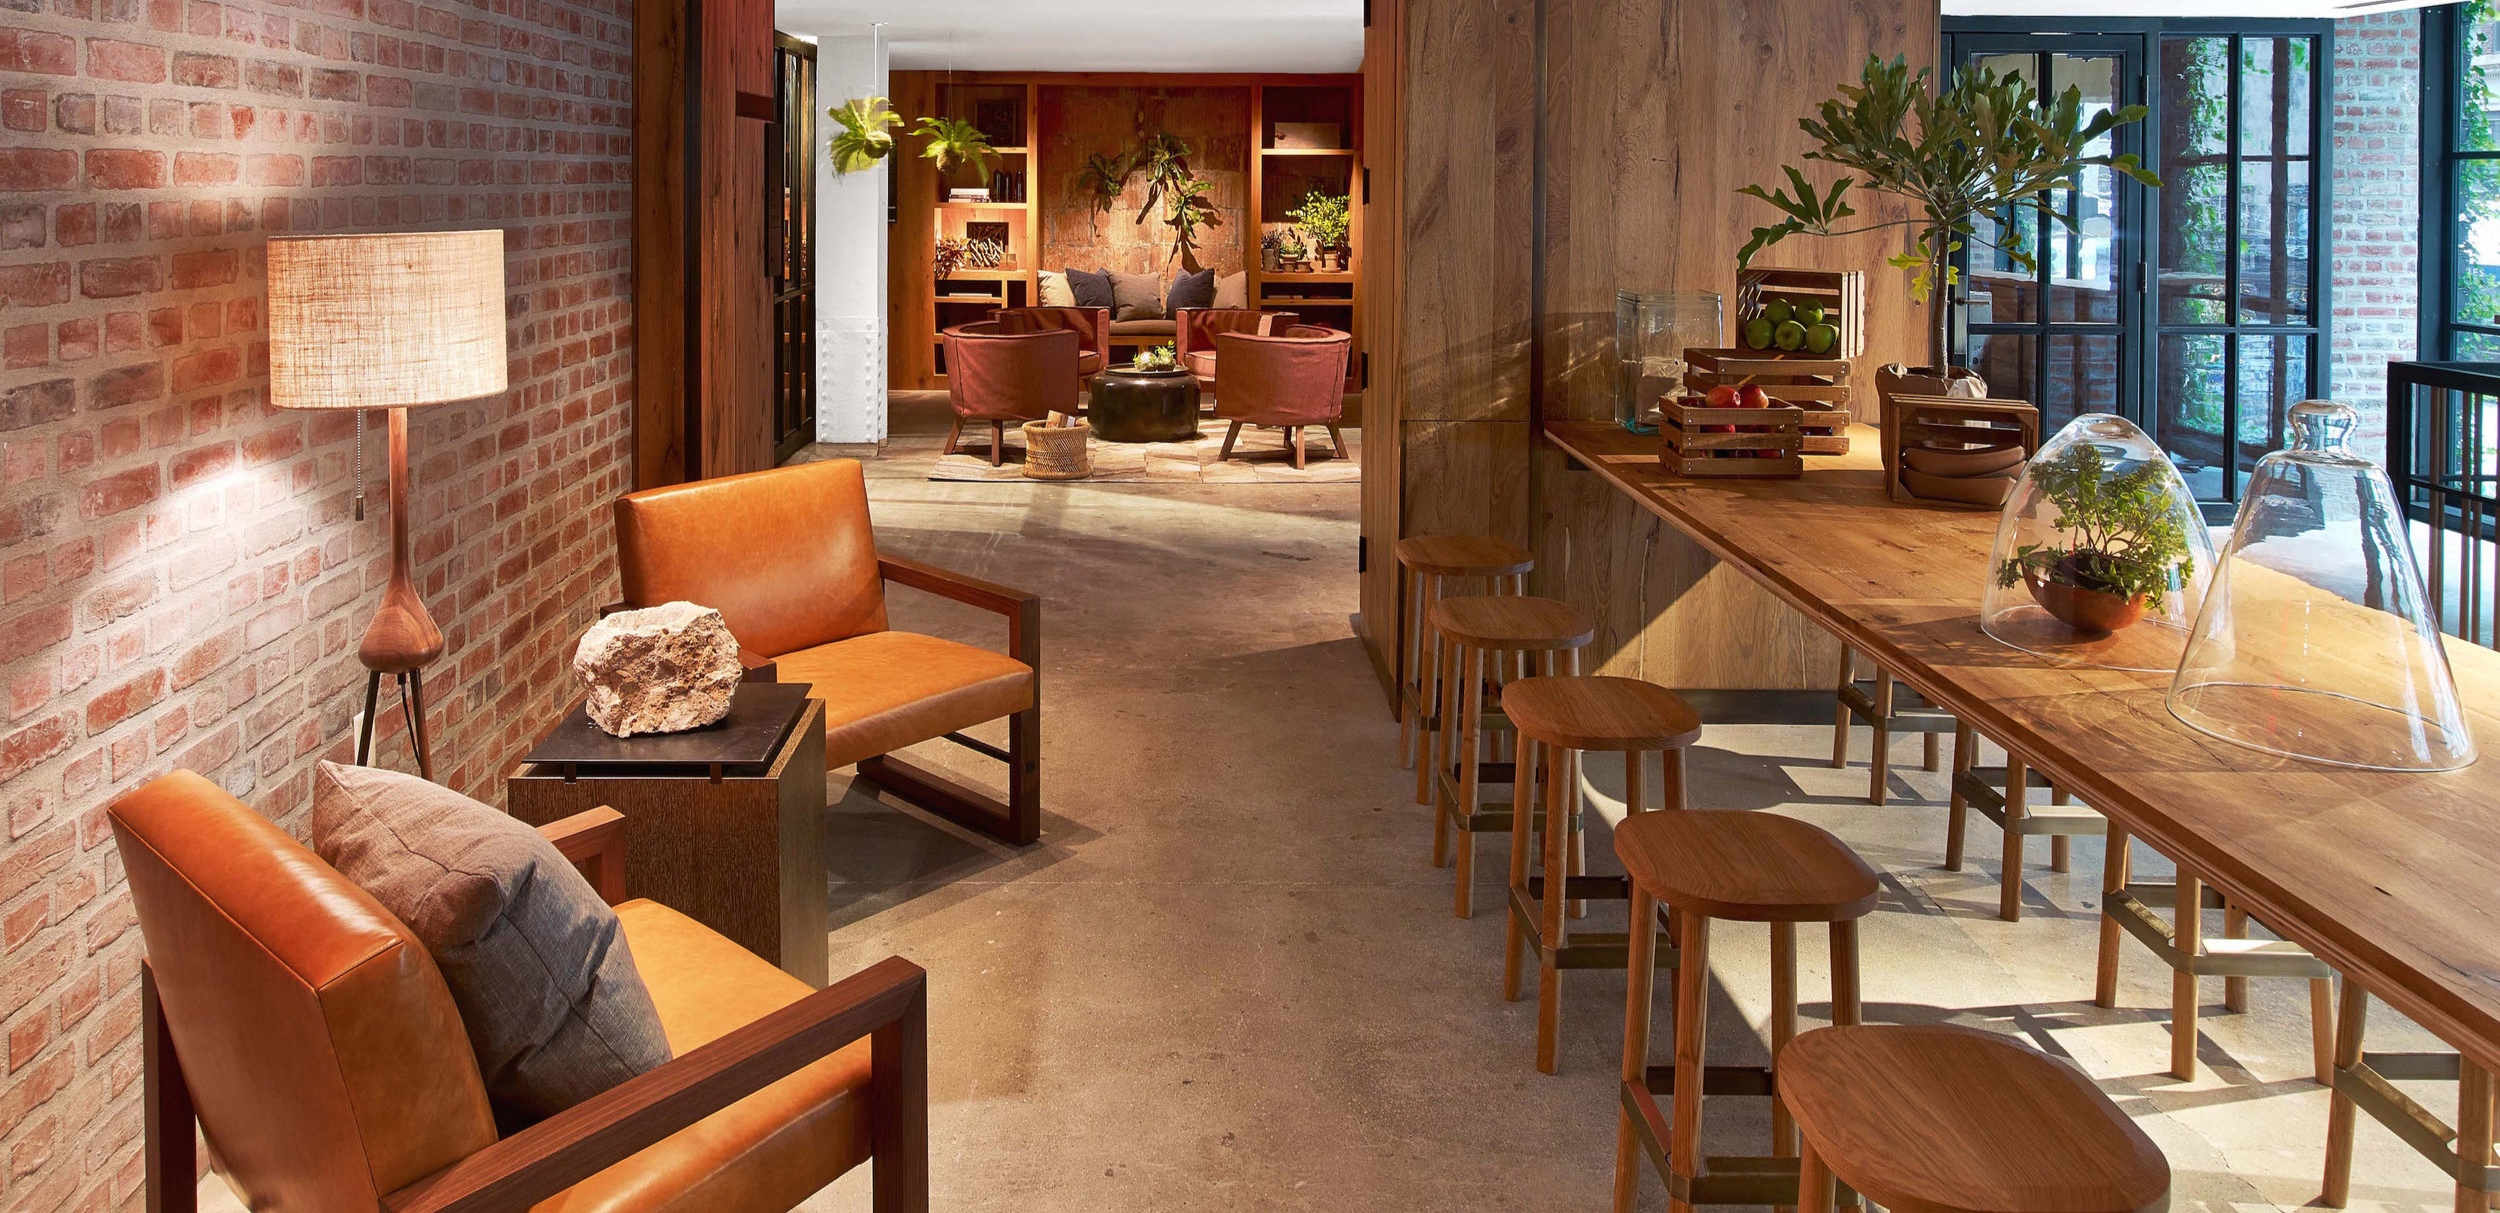 The Hotel Lobby: From Unused Space to a High-Tech Hub | Chargifi